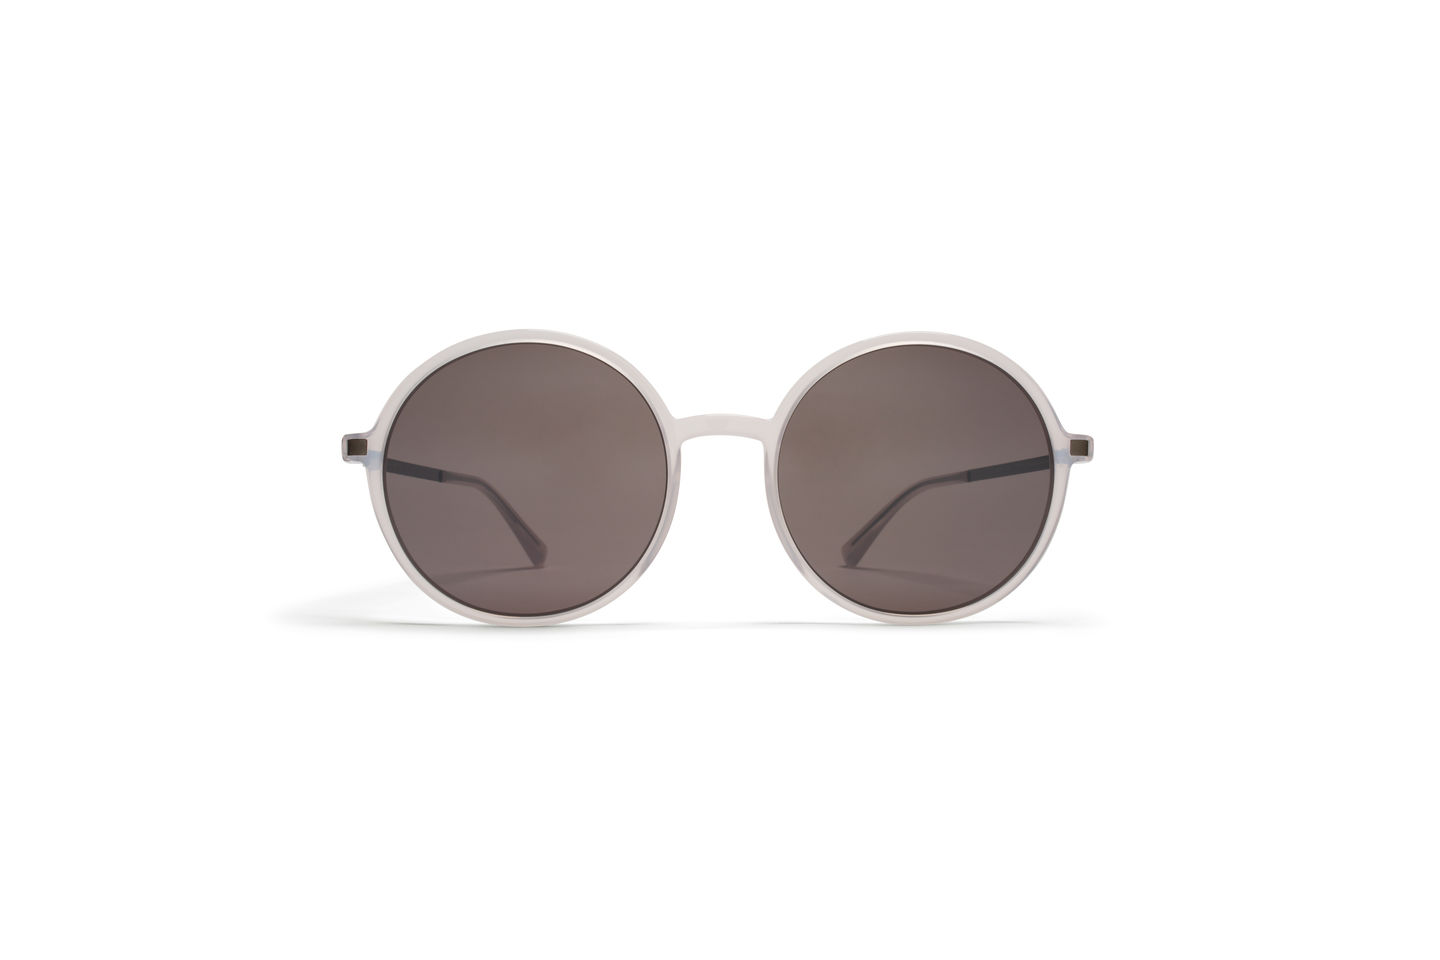 MYKITA acetate sunglasses ANANA in MYKITA JOURNAL's Tropical Edit